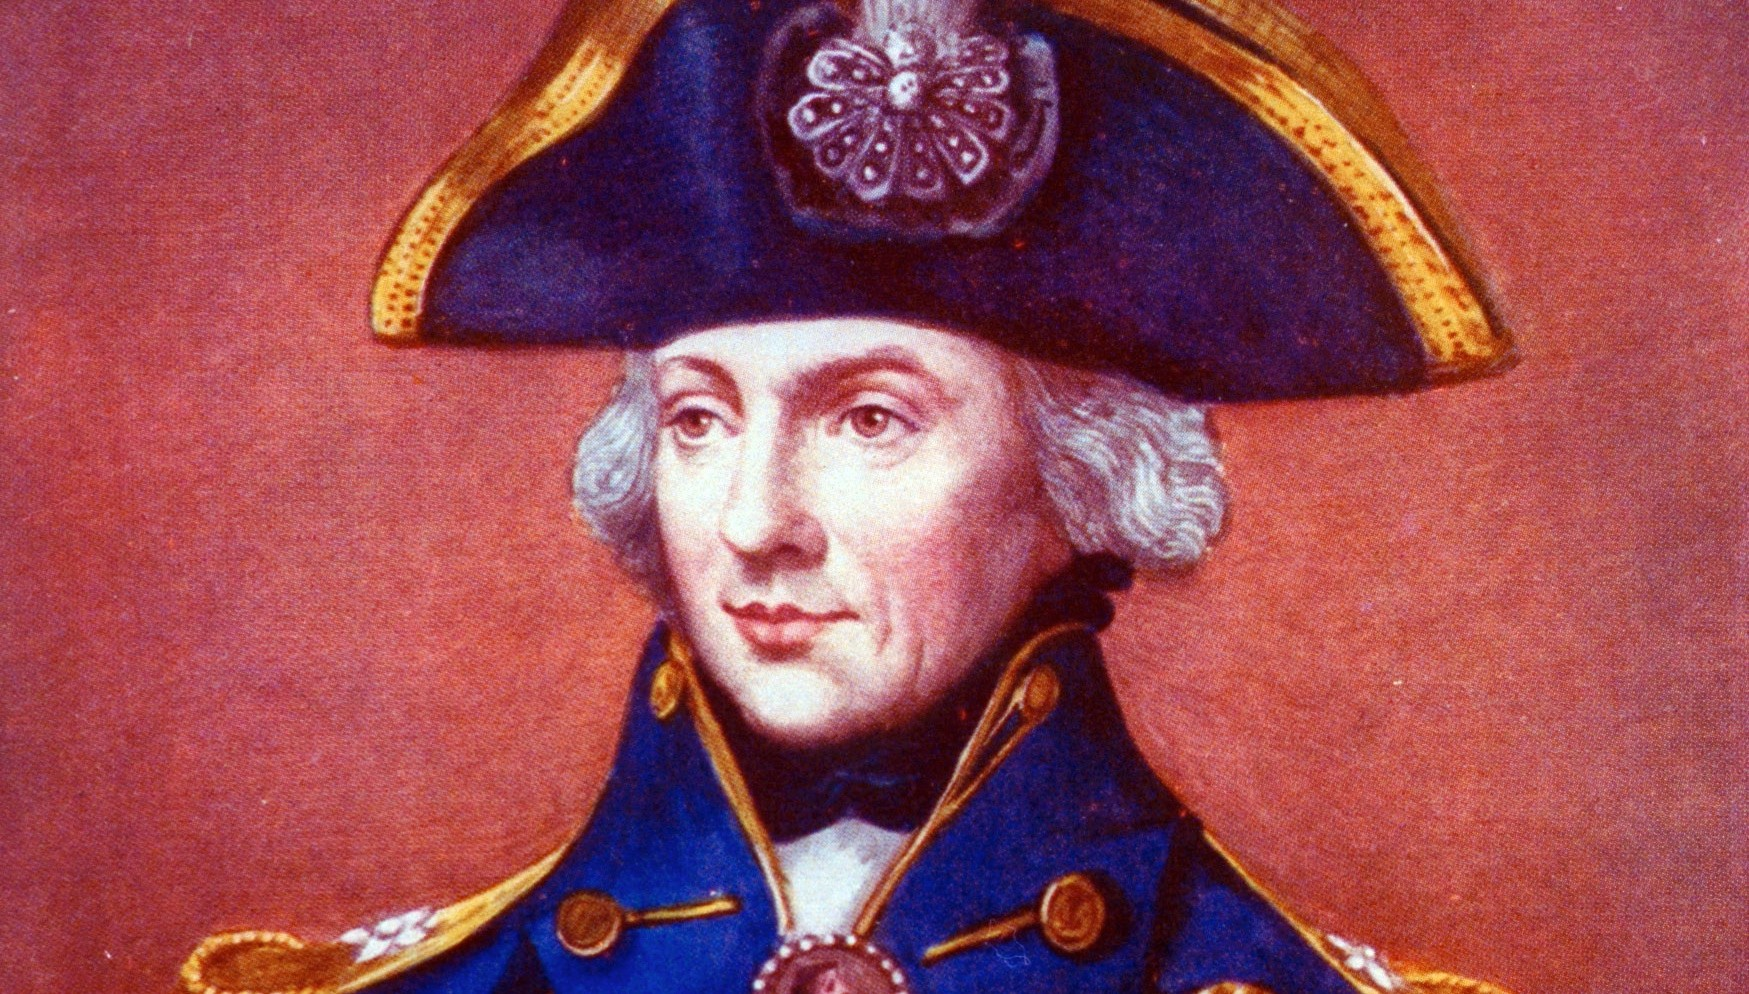 Portrait of English admiral Lord Horatio Nelson